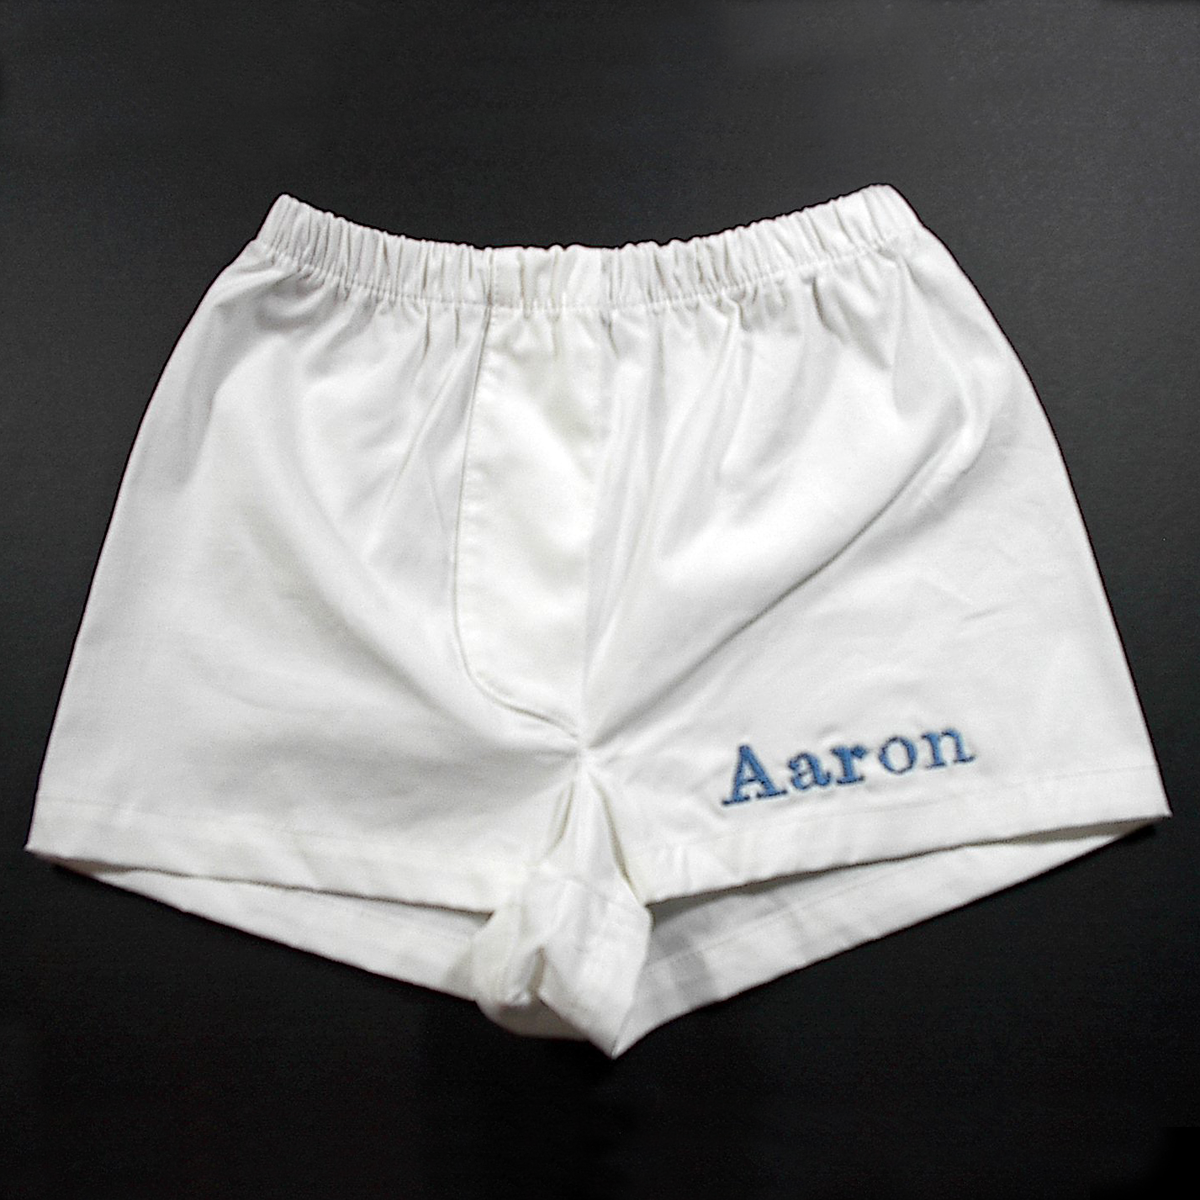 Express your self with our extensive collection of Baby Boxer Shorts. Our boxer shorts are made of % lightweight cotton for breathable comfort.